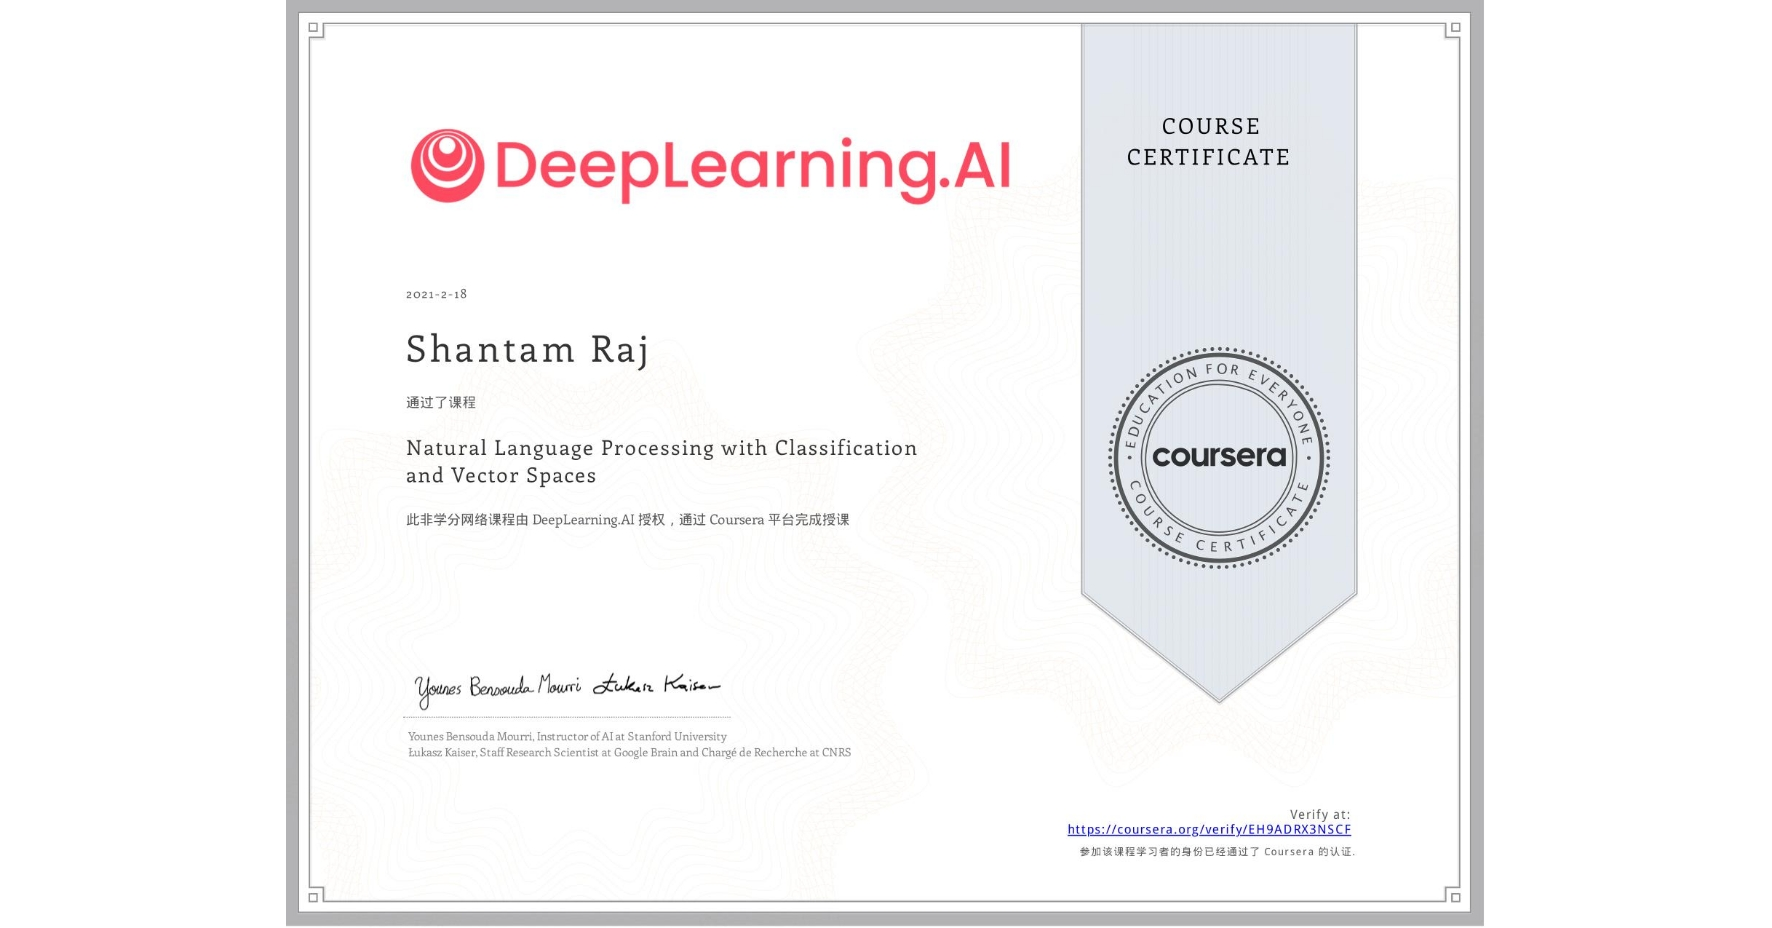 View certificate for Shantam Raj, Natural Language Processing with Classification and Vector Spaces, an online non-credit course authorized by DeepLearning.AI and offered through Coursera